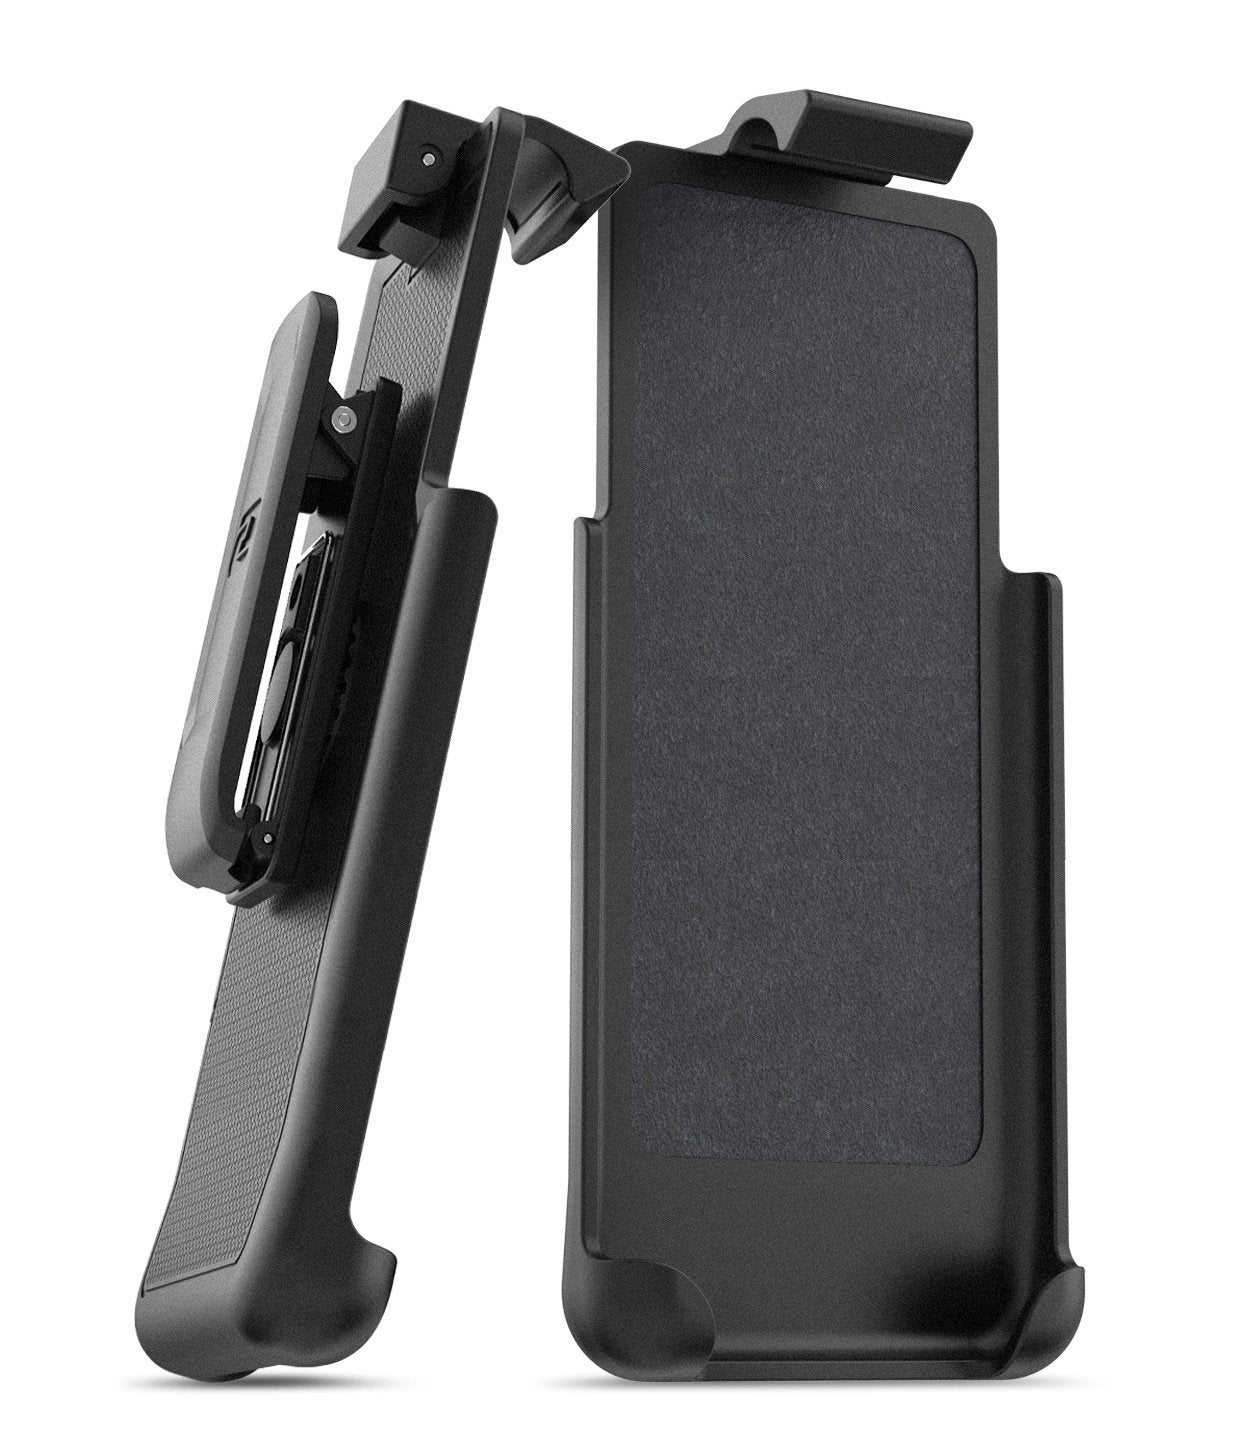 "Belt Clip Holster for Mophie Juice Pack Battery Case - iPhone 7 (4.7"") by Encased (case sold separately)"